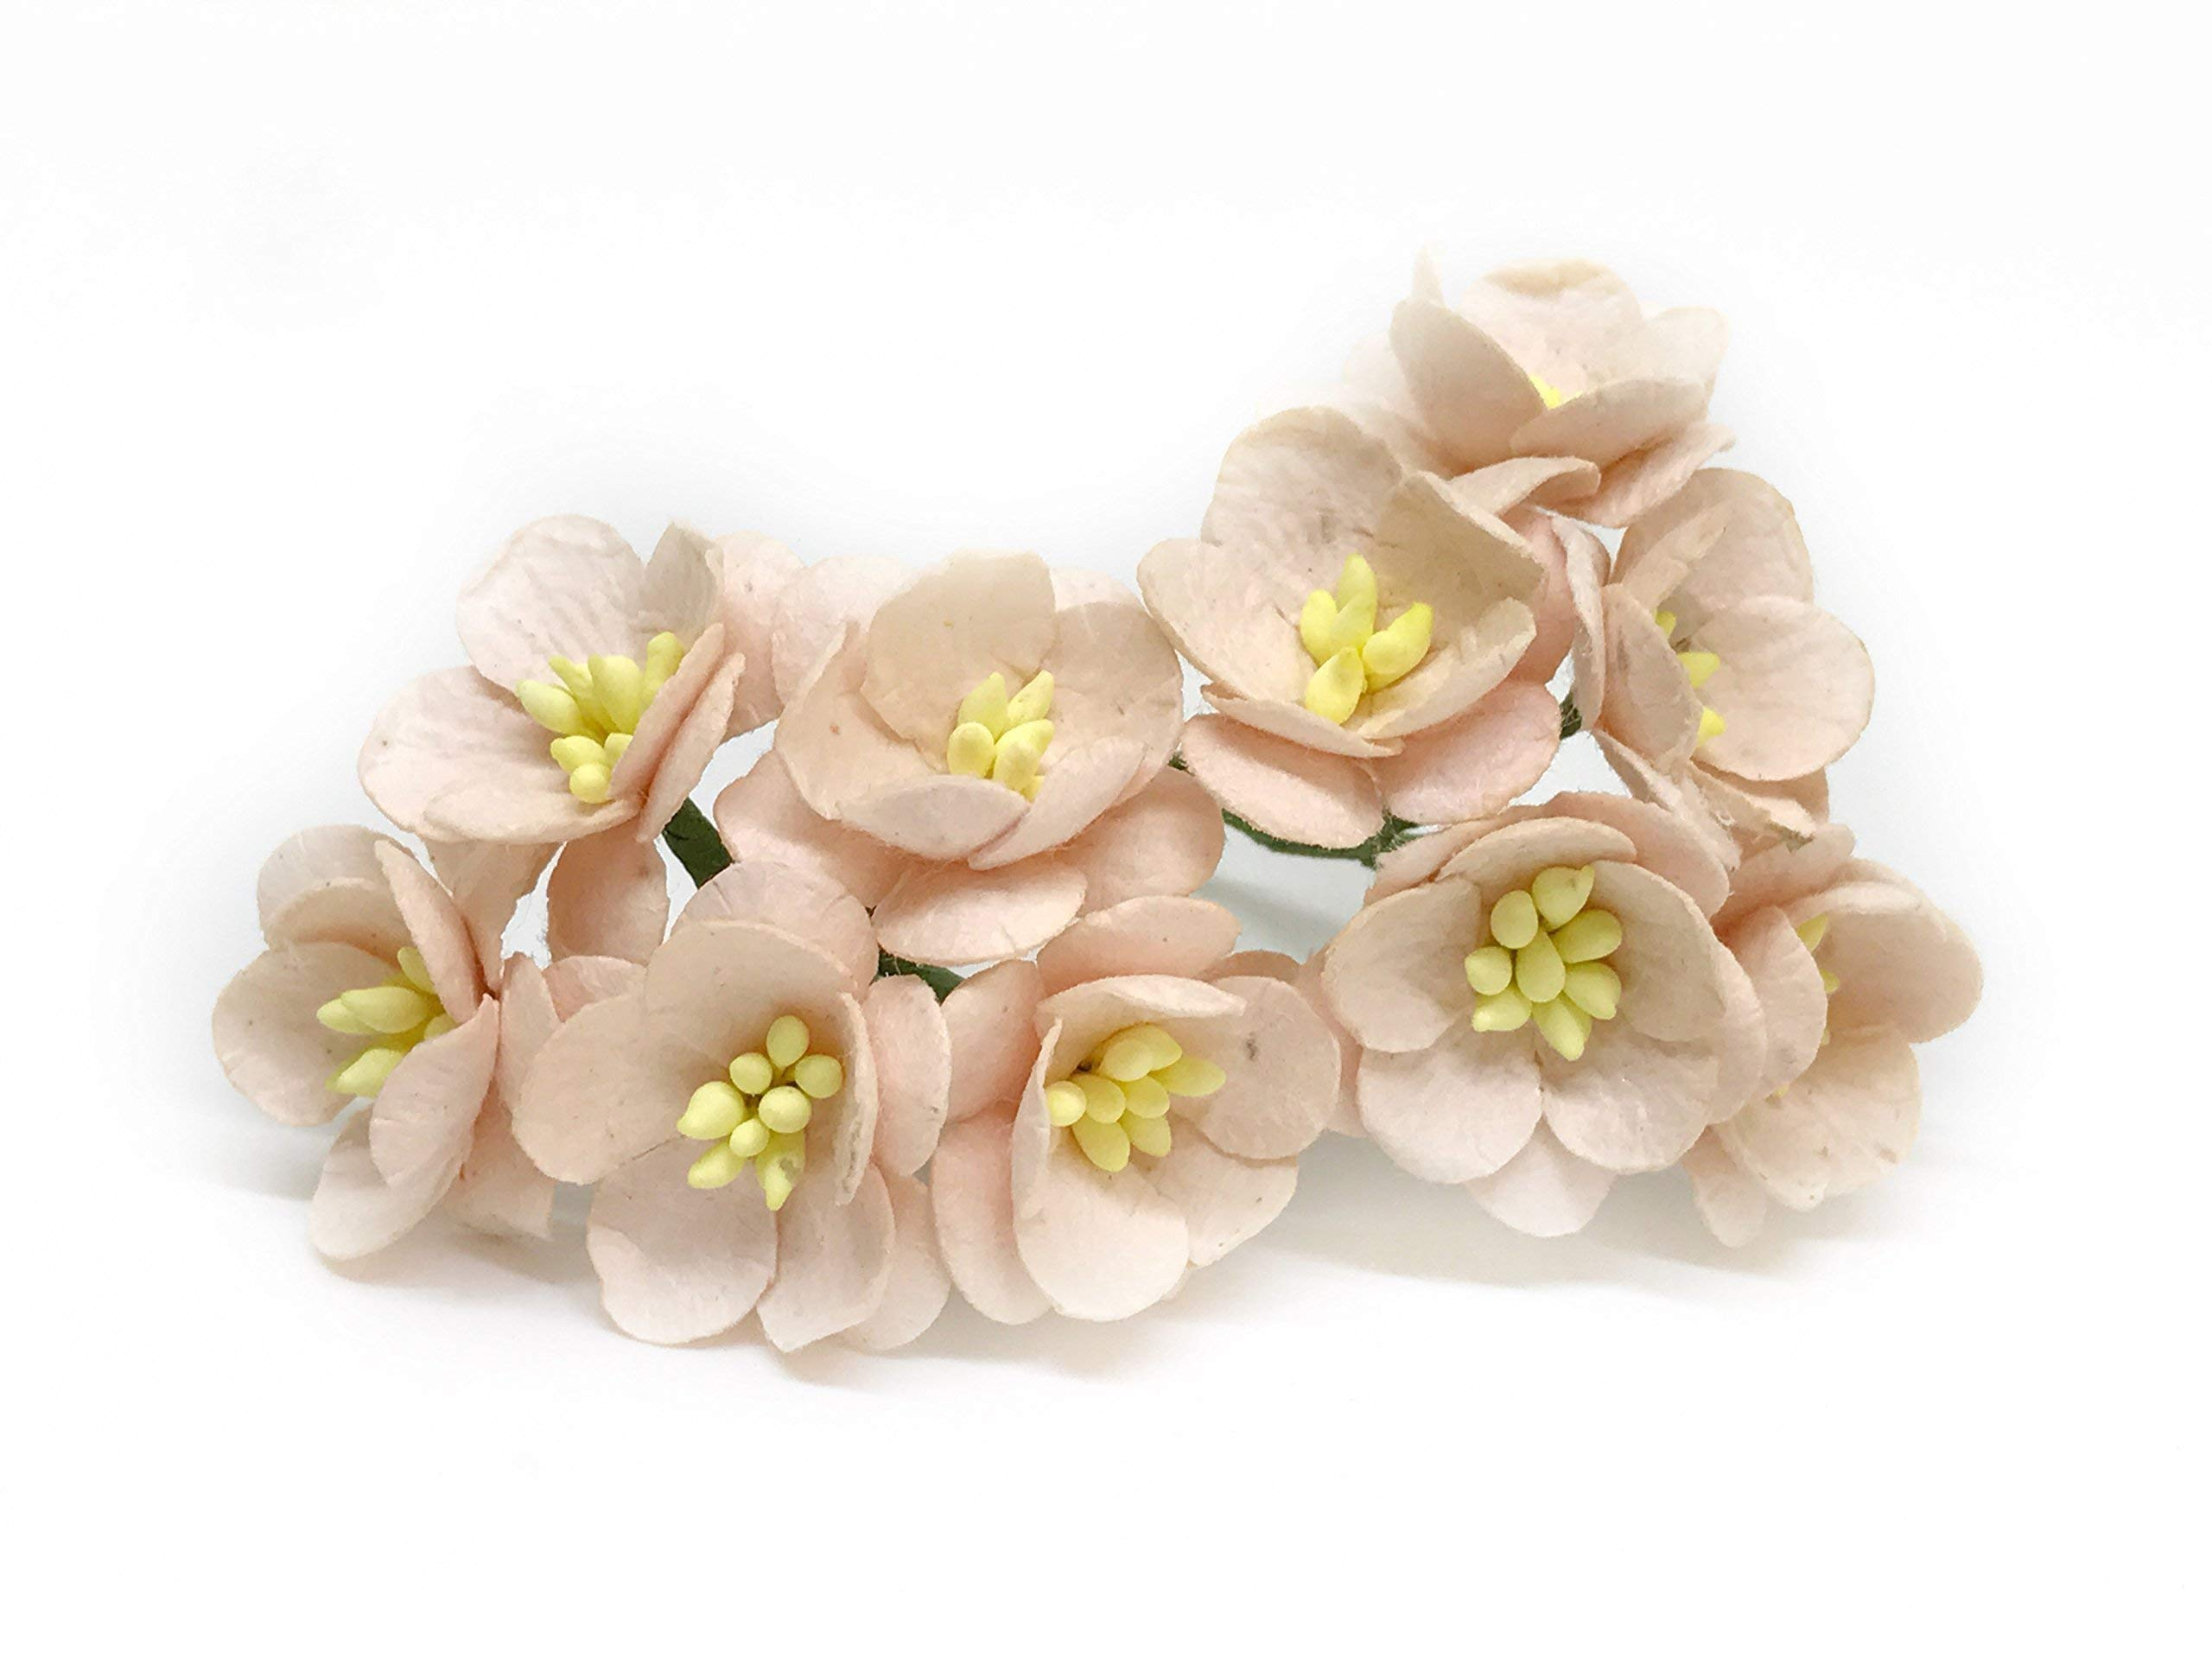 1-Blush-Pink-Cherry-Blossom-Flower-Artificial-Flowers-Paper-Flowers-Synthetic-Flowers-Fake-Flowers-Paper-Craft-Flowers-Mulberry-Paper-Flowers-Wedding-25-Pieces